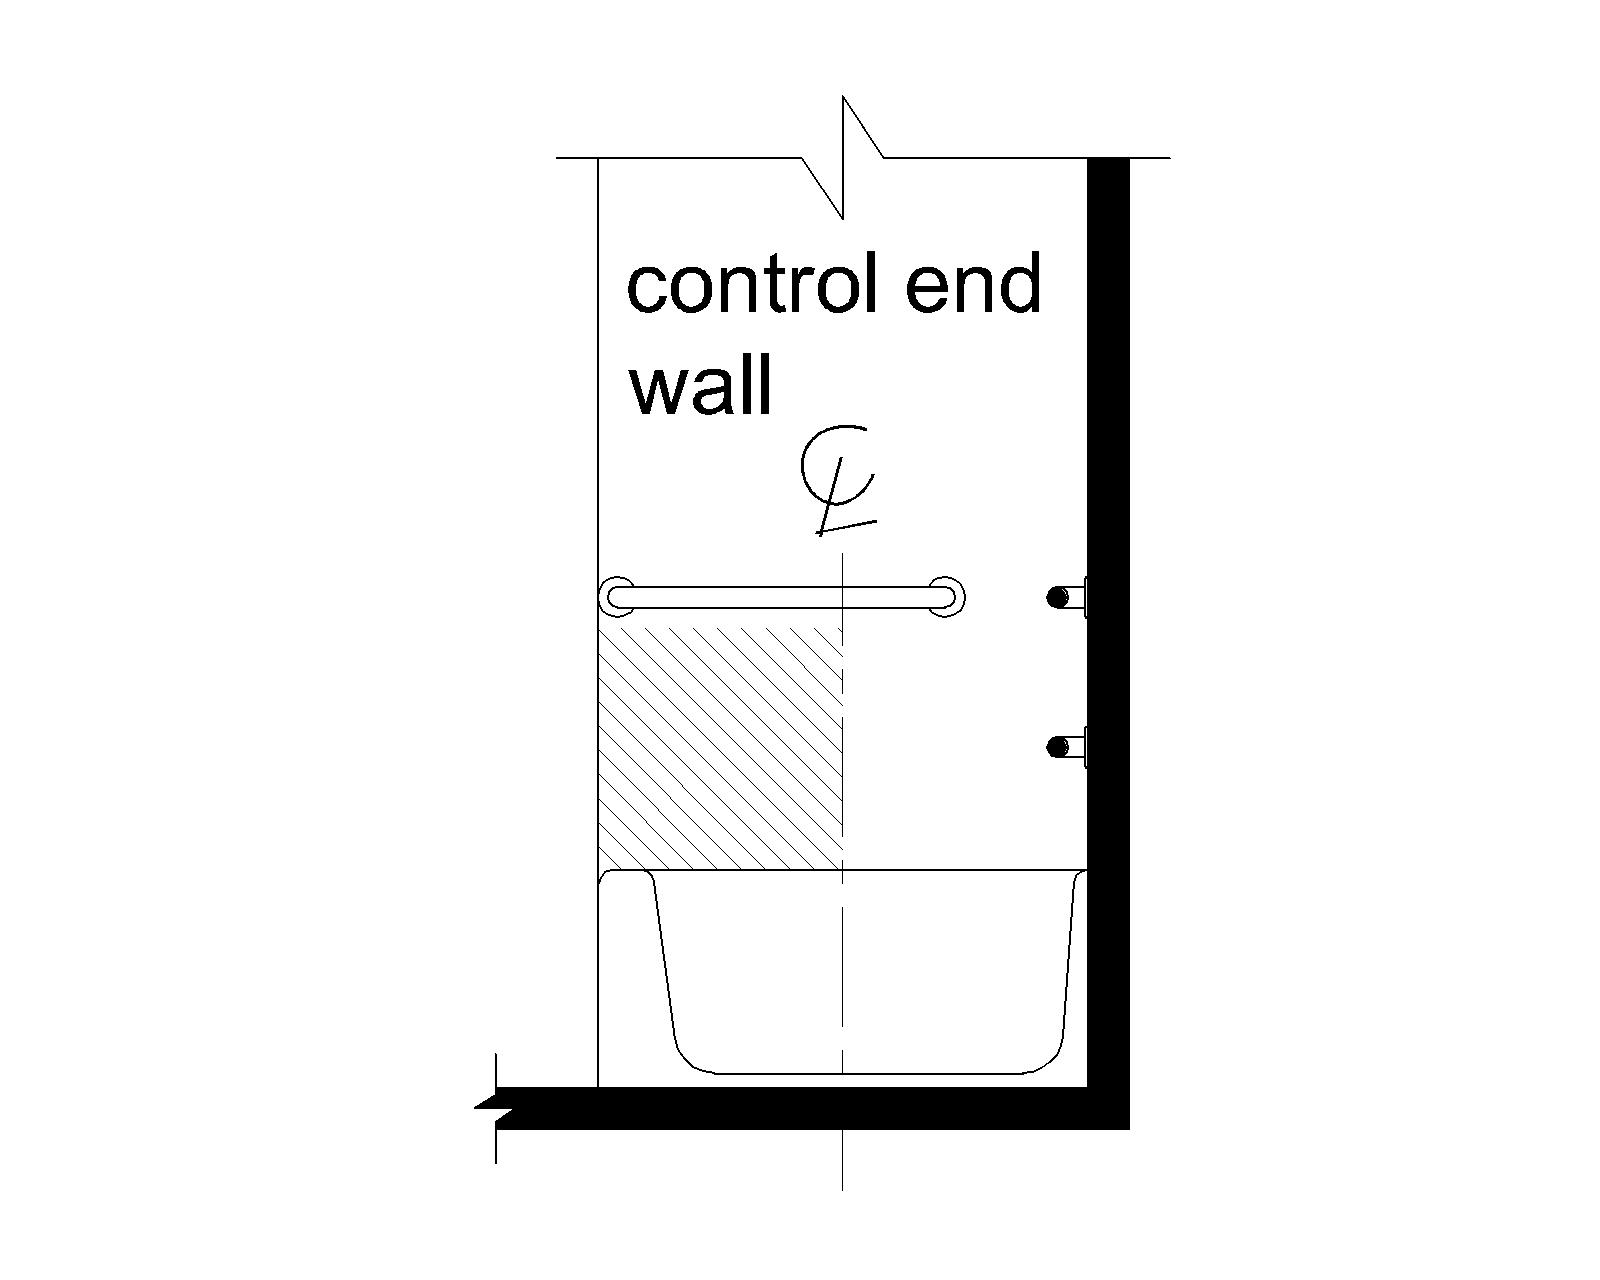 Elevation drawing shows the location of controls above the tub rim and below the grab bar and between the front edge of the tub and the tub centerline.